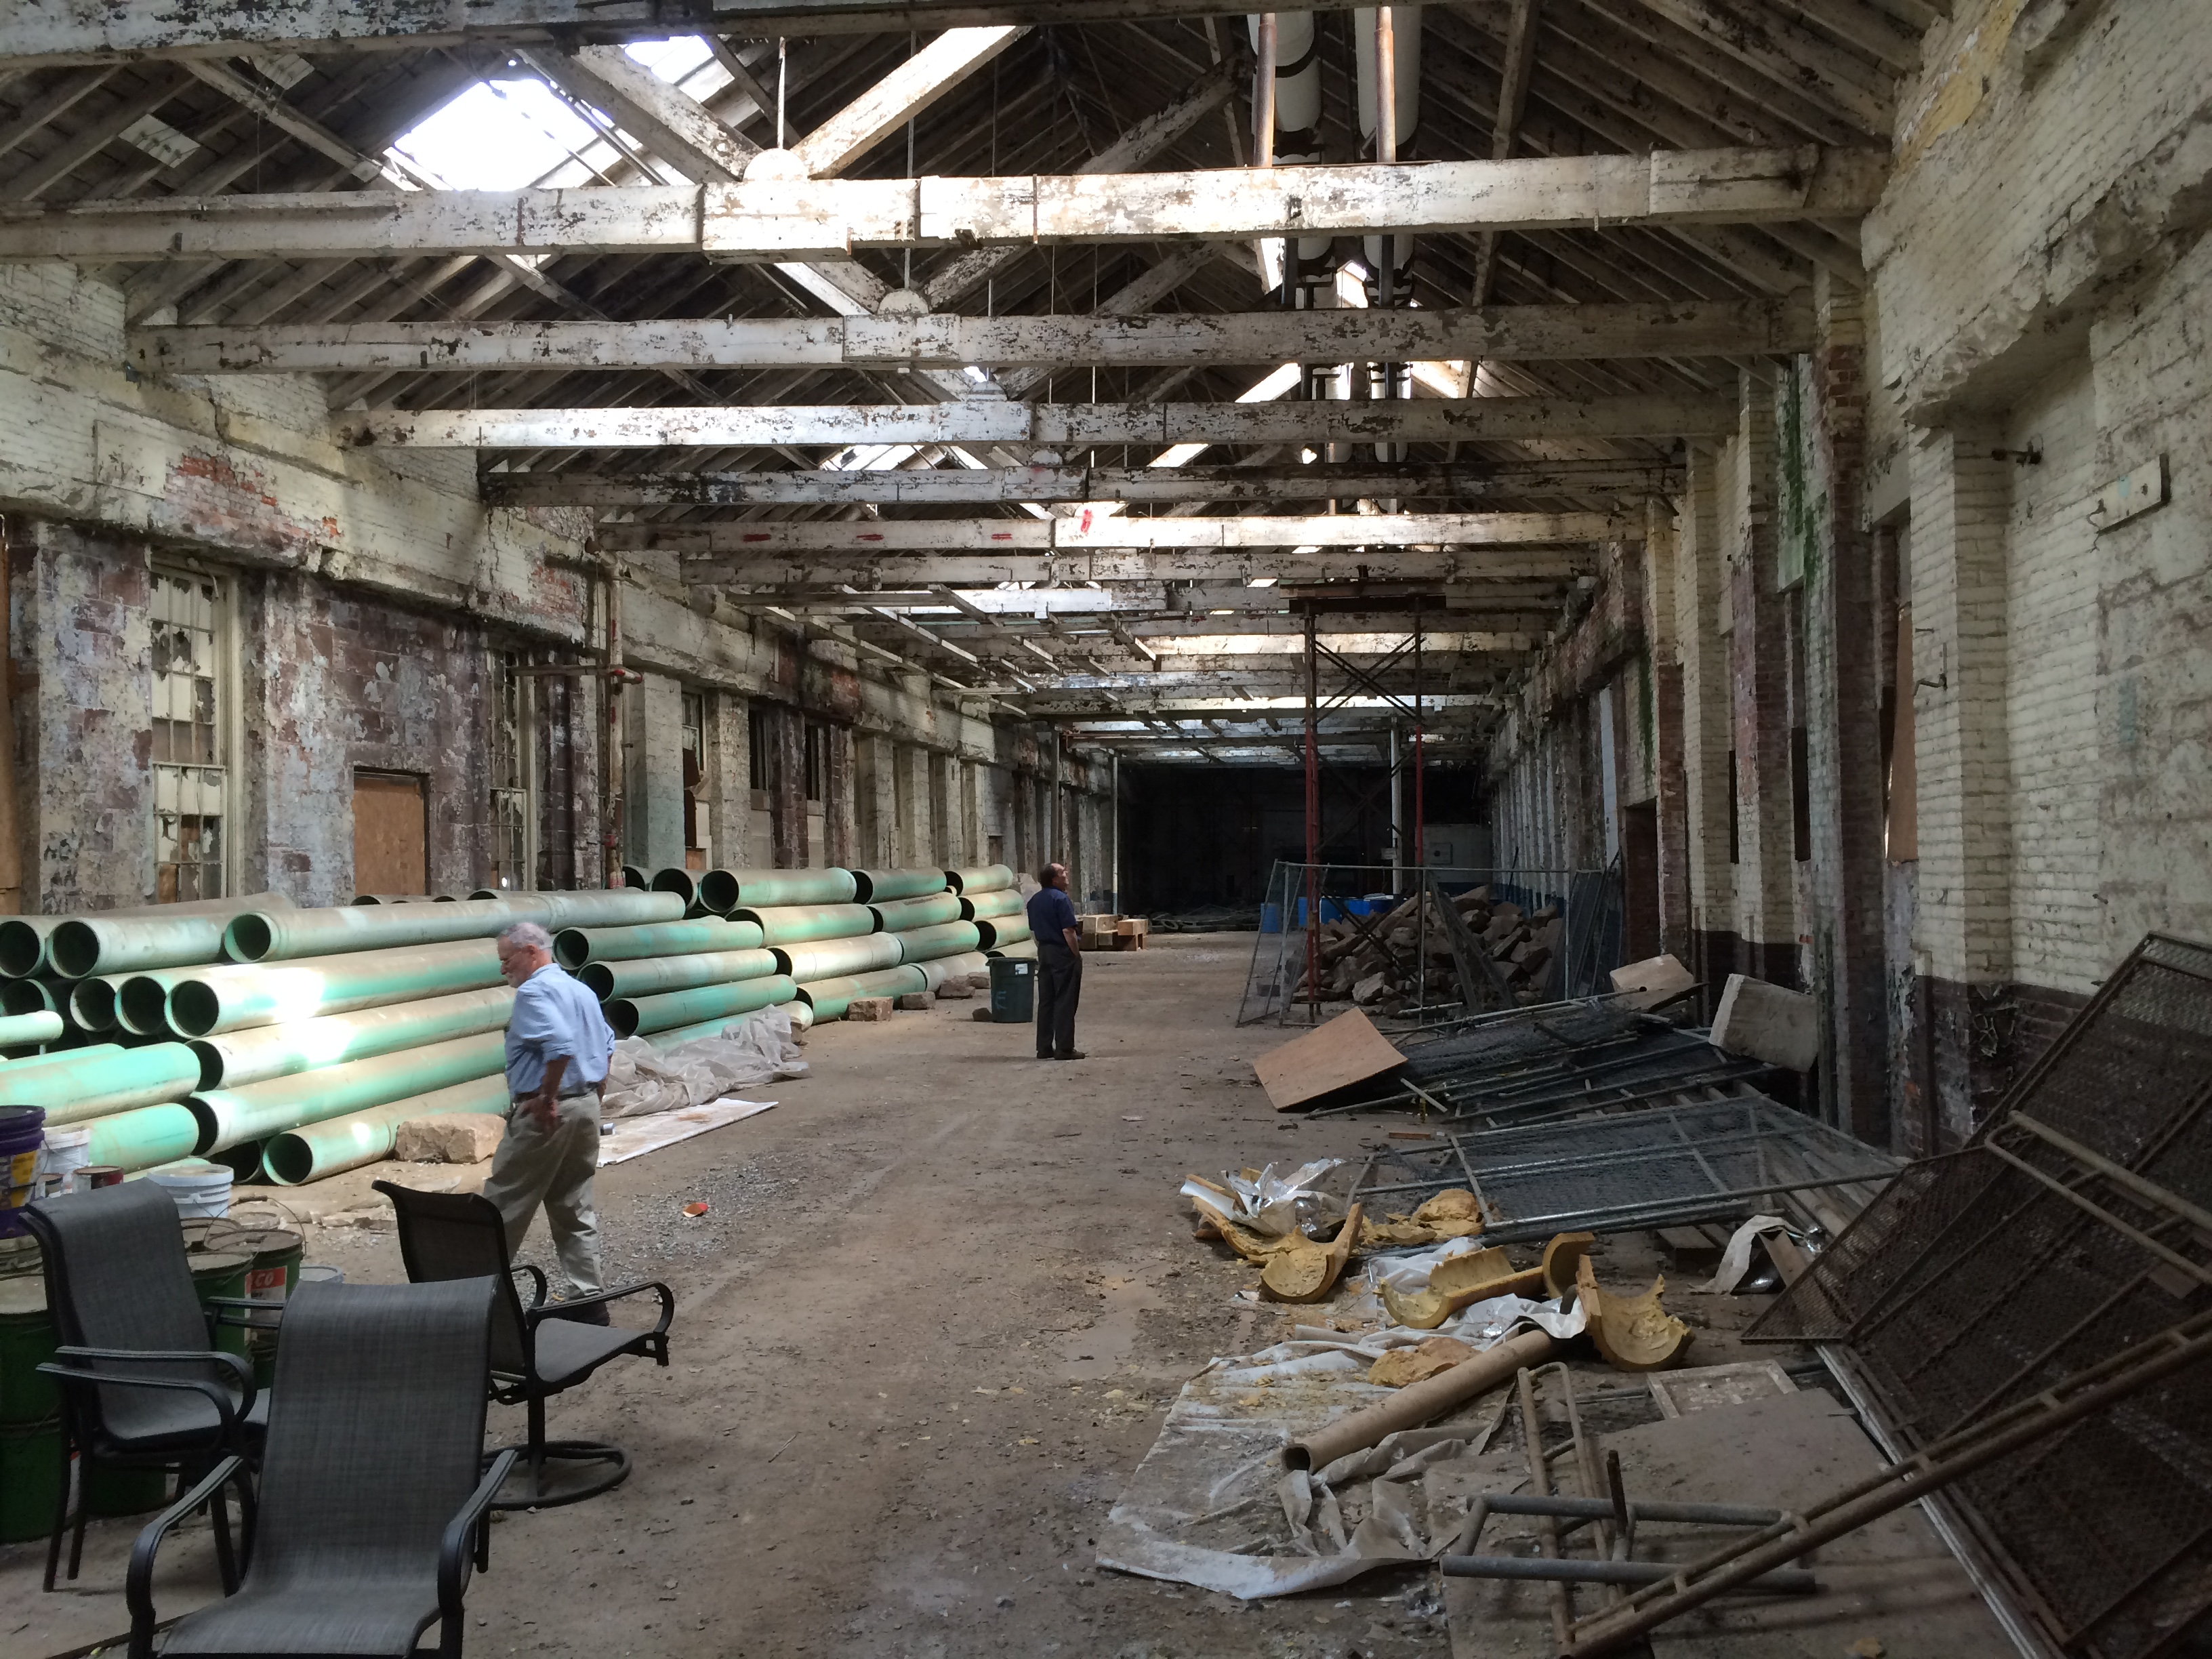 Inside the future home of the Coltsville National Park visitor's center. This building used to house the Colt foundry. Photo by Eric Hintz.